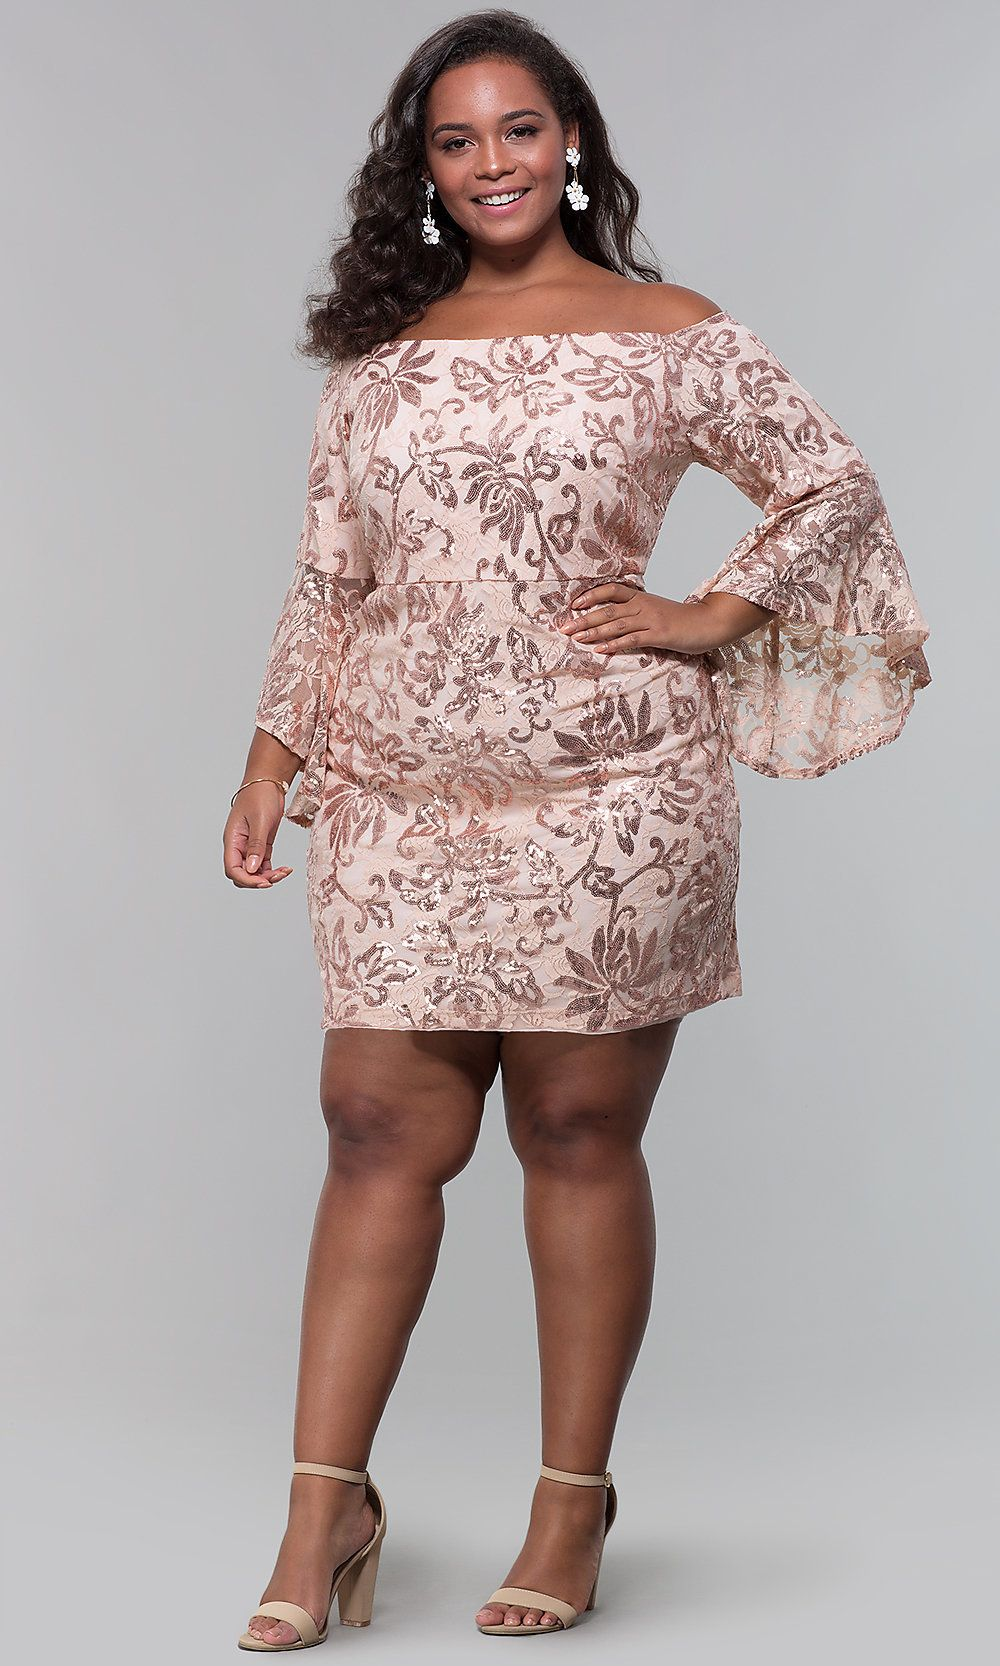 36 Plus Size Wedding Guest Dresses With Sleeves Alexa Webb Plus Size Cocktail Dresses Plus Size Wedding Guest Dresses Dresses To Wear To A Wedding